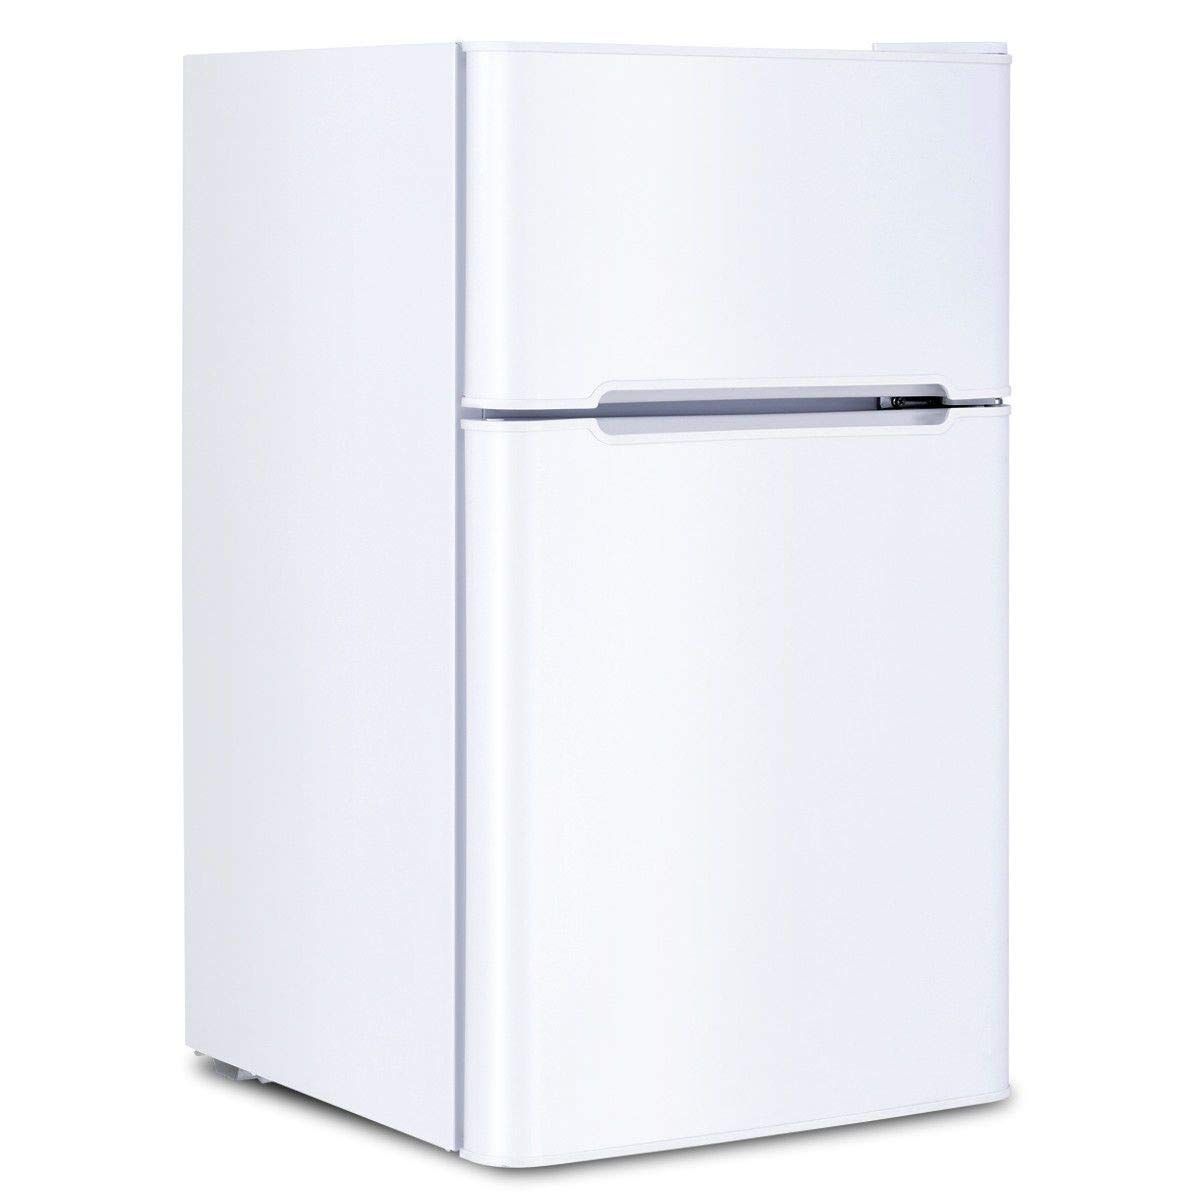 White 3.2 Cu. Ft. Stainless Steel Double Doors Compact Mini Refrigerator Internal Freezer Compartment Cooler Fridge Perfect For Home Kitchen Hotel Office Dorm Wet Bars Adjustable Temperature Mechanism